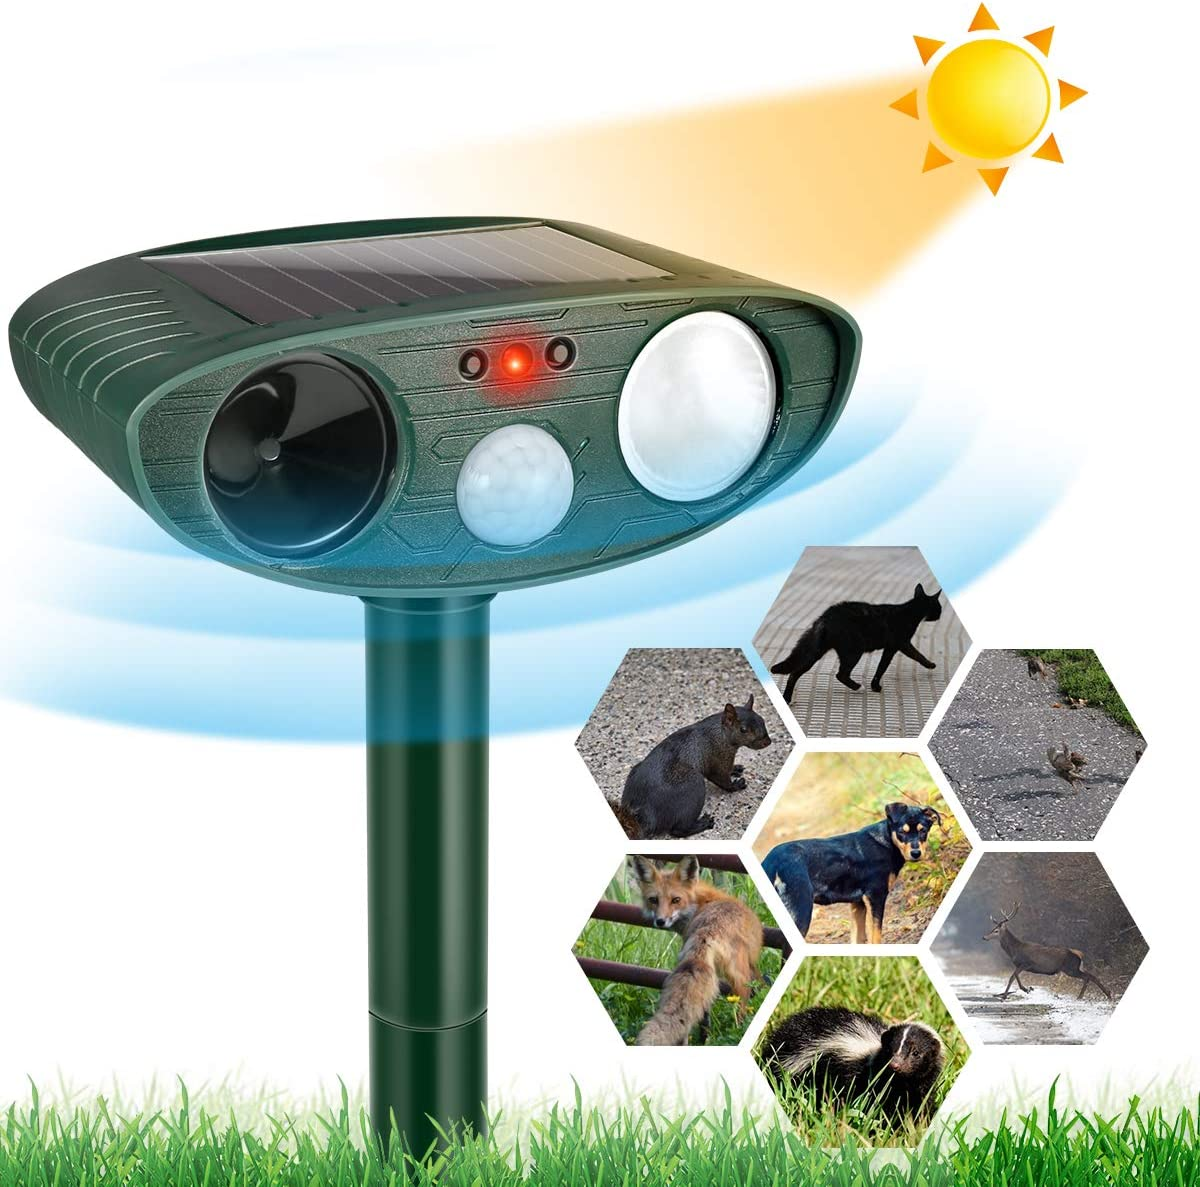 Dog Cat Repellent, Ultrasonic Animal Repellent with Motion Sensor and Flashing Lights Outdoor Solar Powered Waterproof Farm Garden Yard Repellent, Cats, Dogs, Foxes, Birds, Skunks, Rod,Chipmunk,Deer